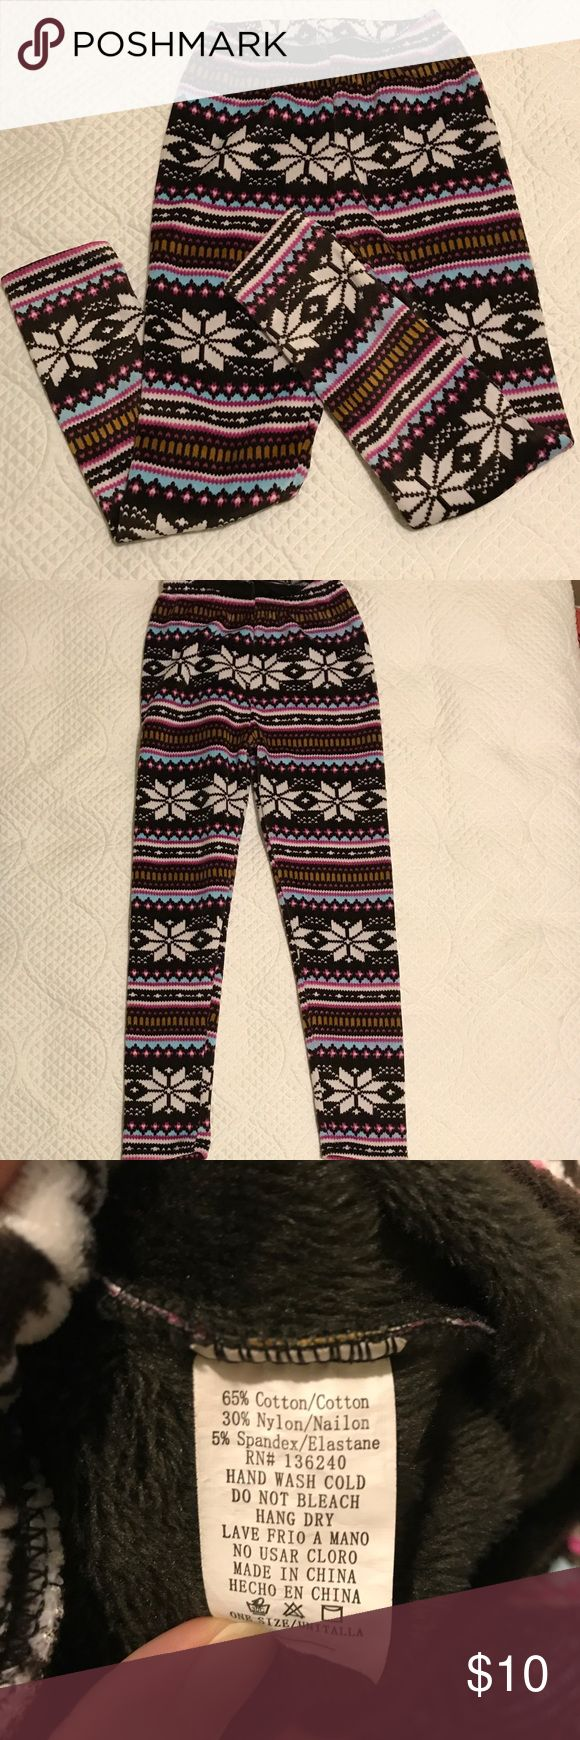 Best 25 first perfect 10 ideas on pinterest easy pizza dough super soft winter leggings os first like a sm robcynllc Image collections